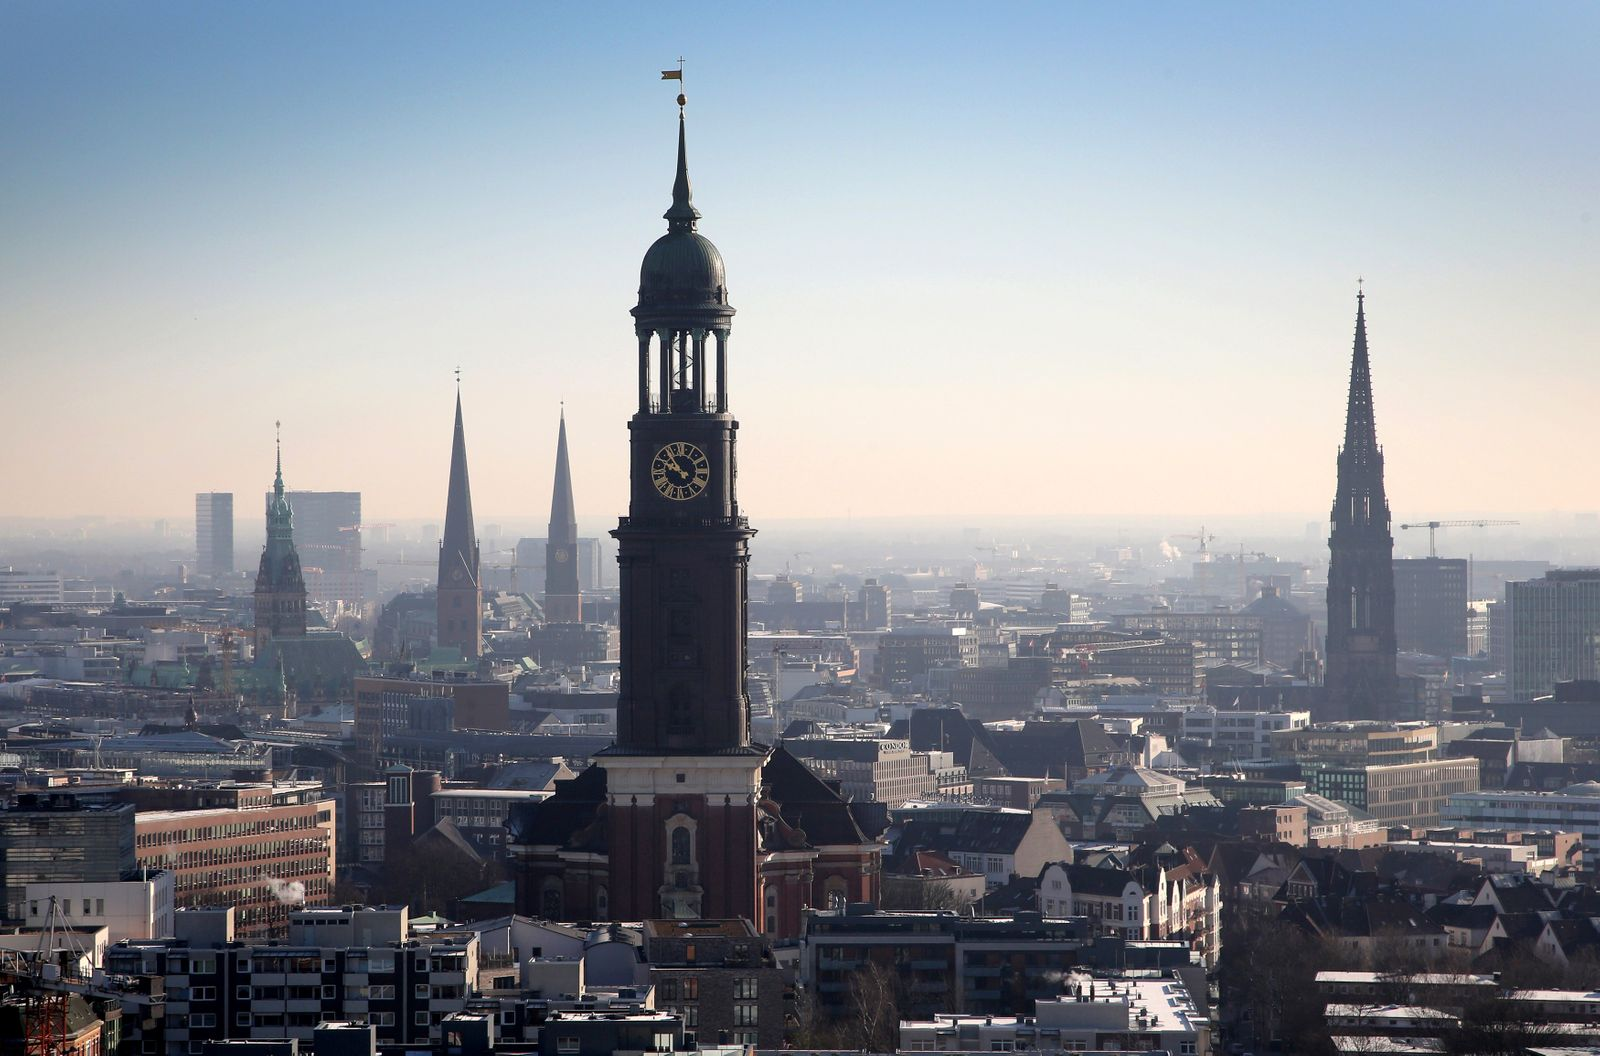 Skyline of Hamburg, Germany - 14 Feb 2018